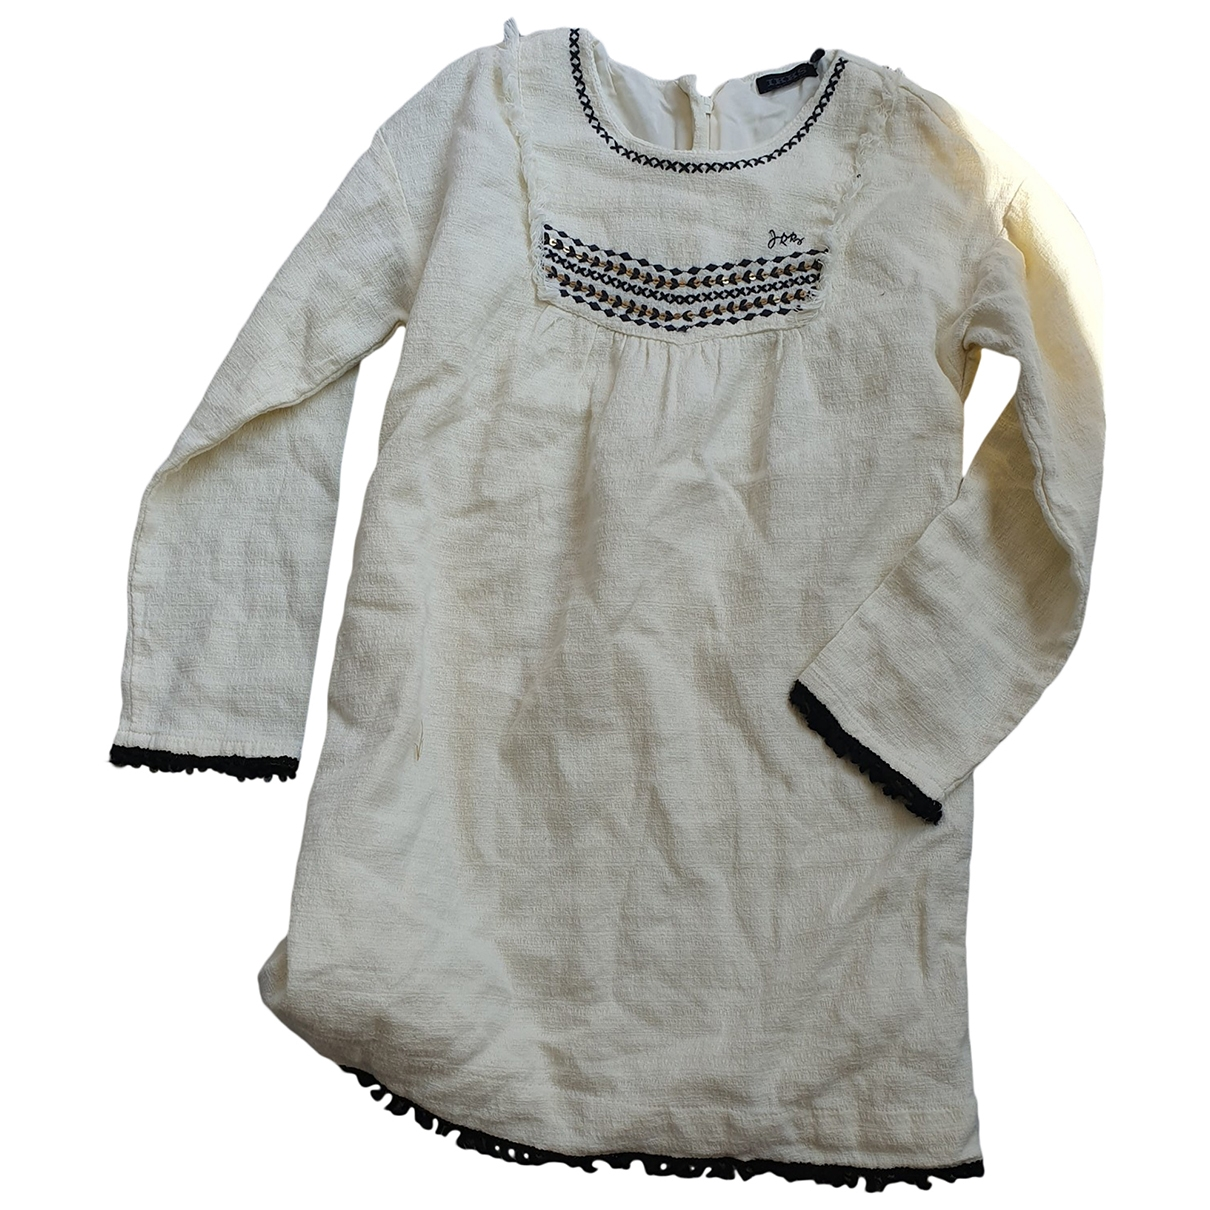 Ikks \N White Cotton dress for Kids 6 years - up to 114cm FR